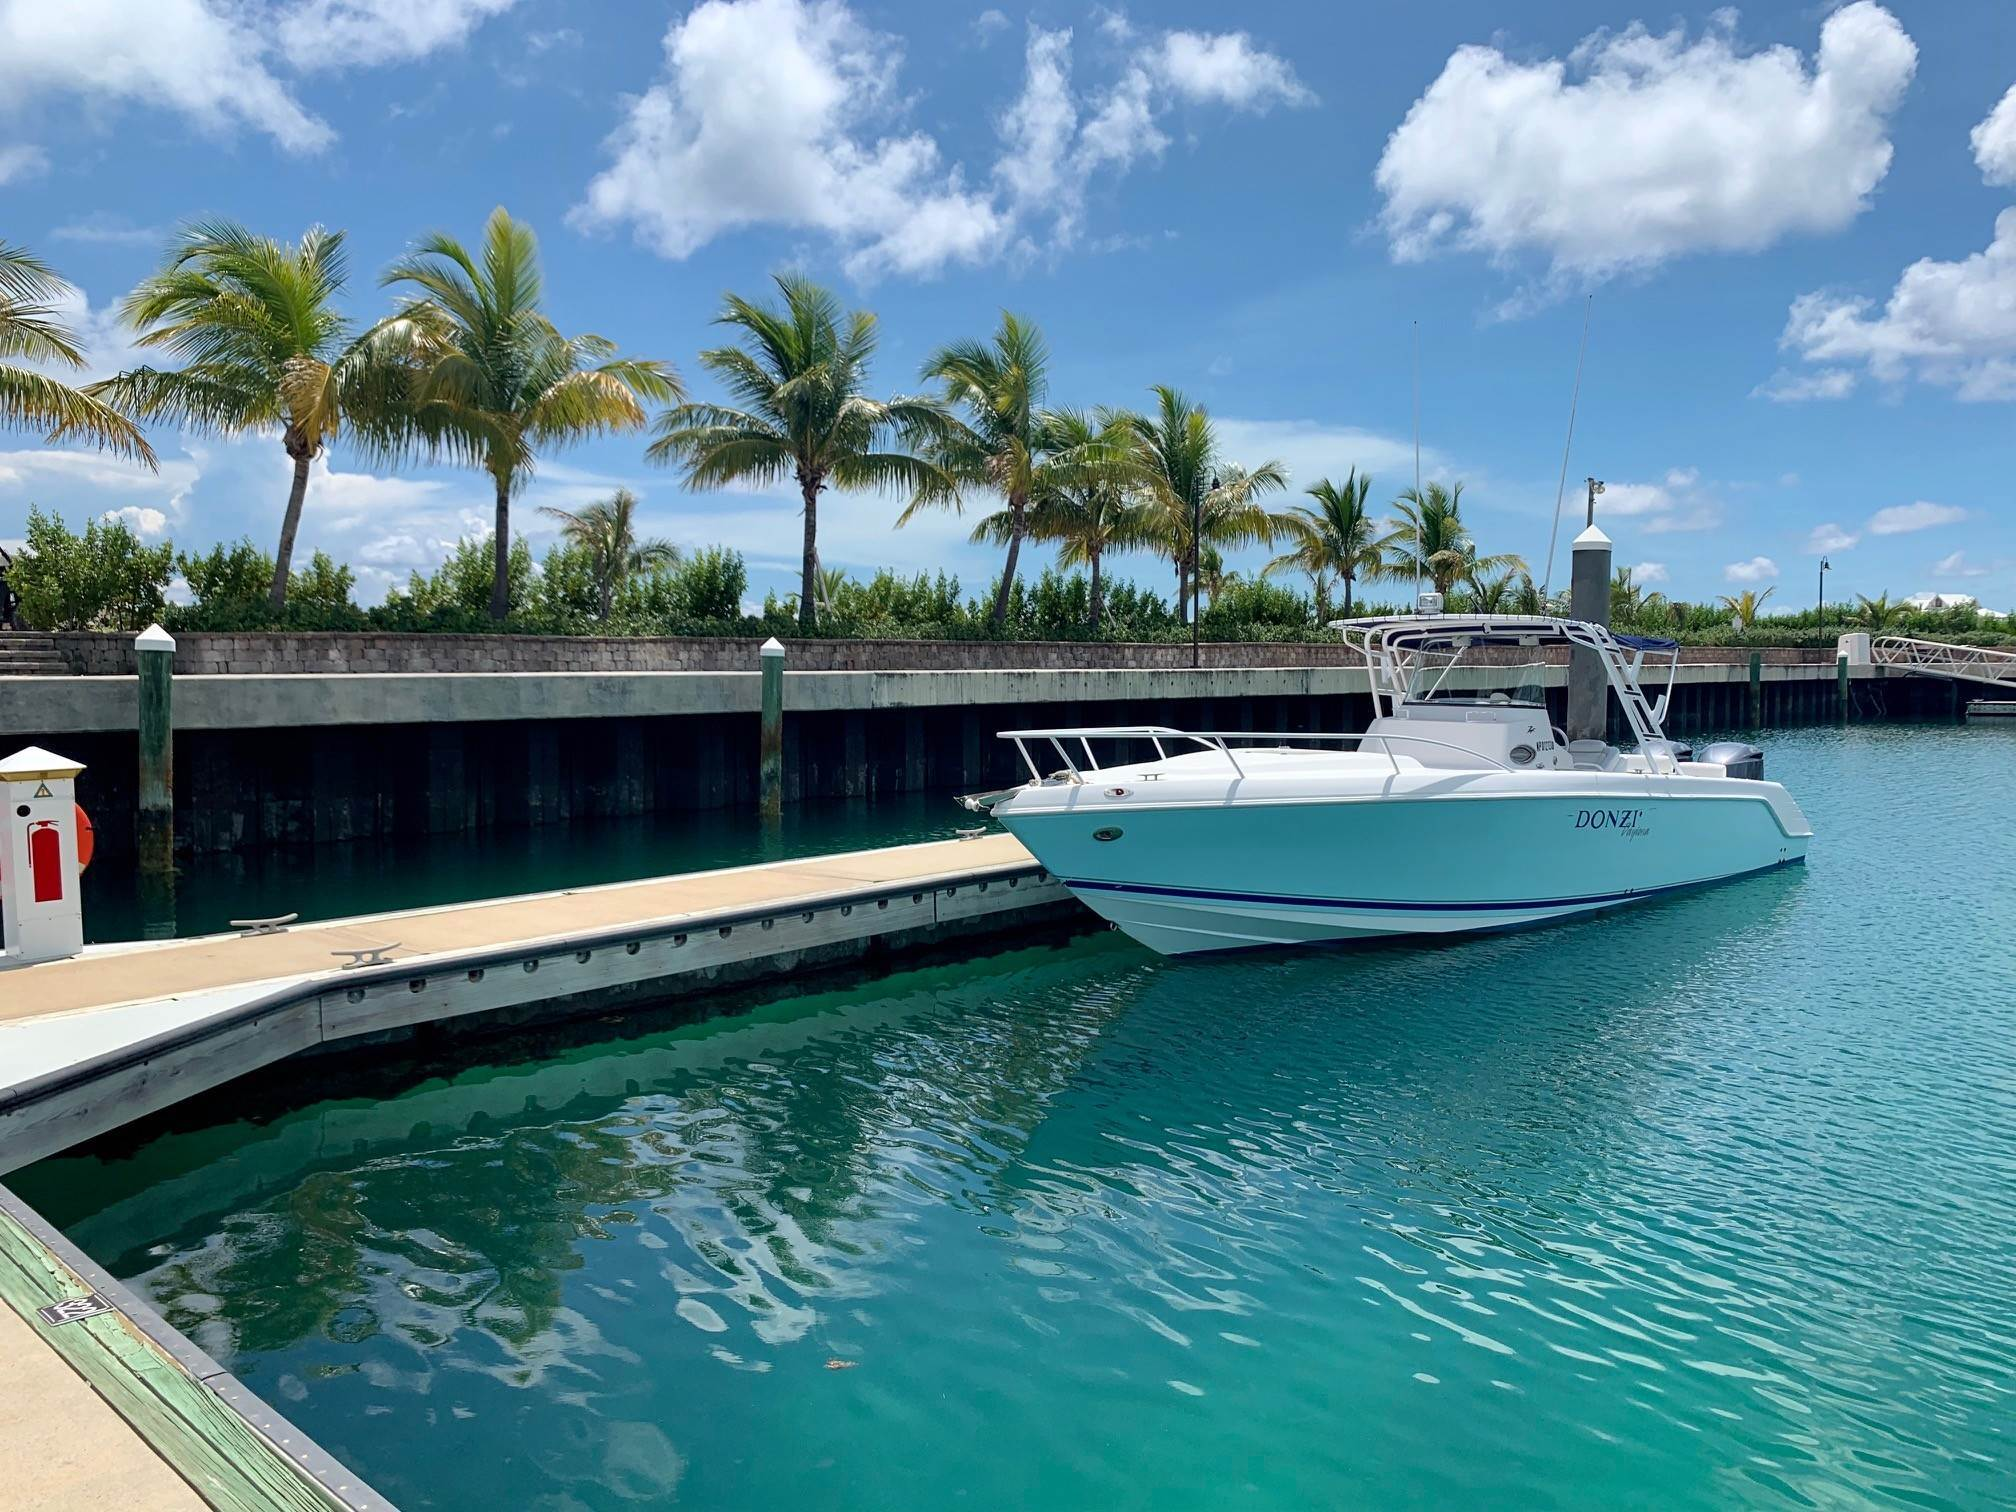 8. Otro por un Venta en Dock Slip #322 Chub Cay Marina, The Berry Islands - MLS 38791 Chub Cay, Islas Berry, Bahamas